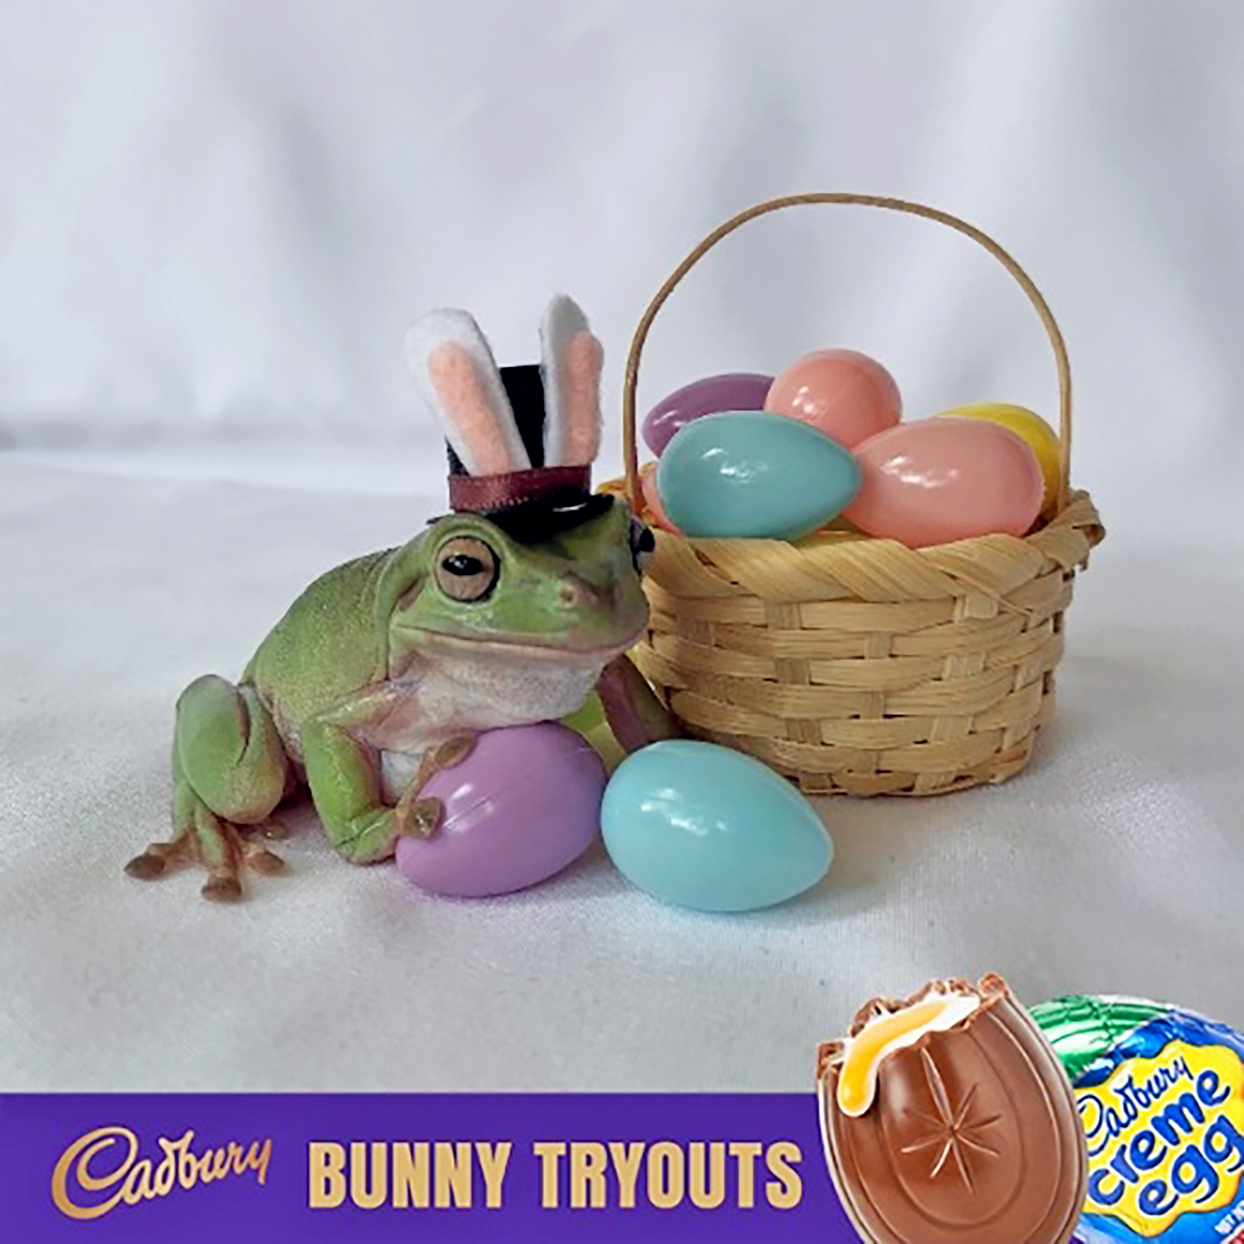 Frog poses with plastic Easter eggs for Cadbury ad